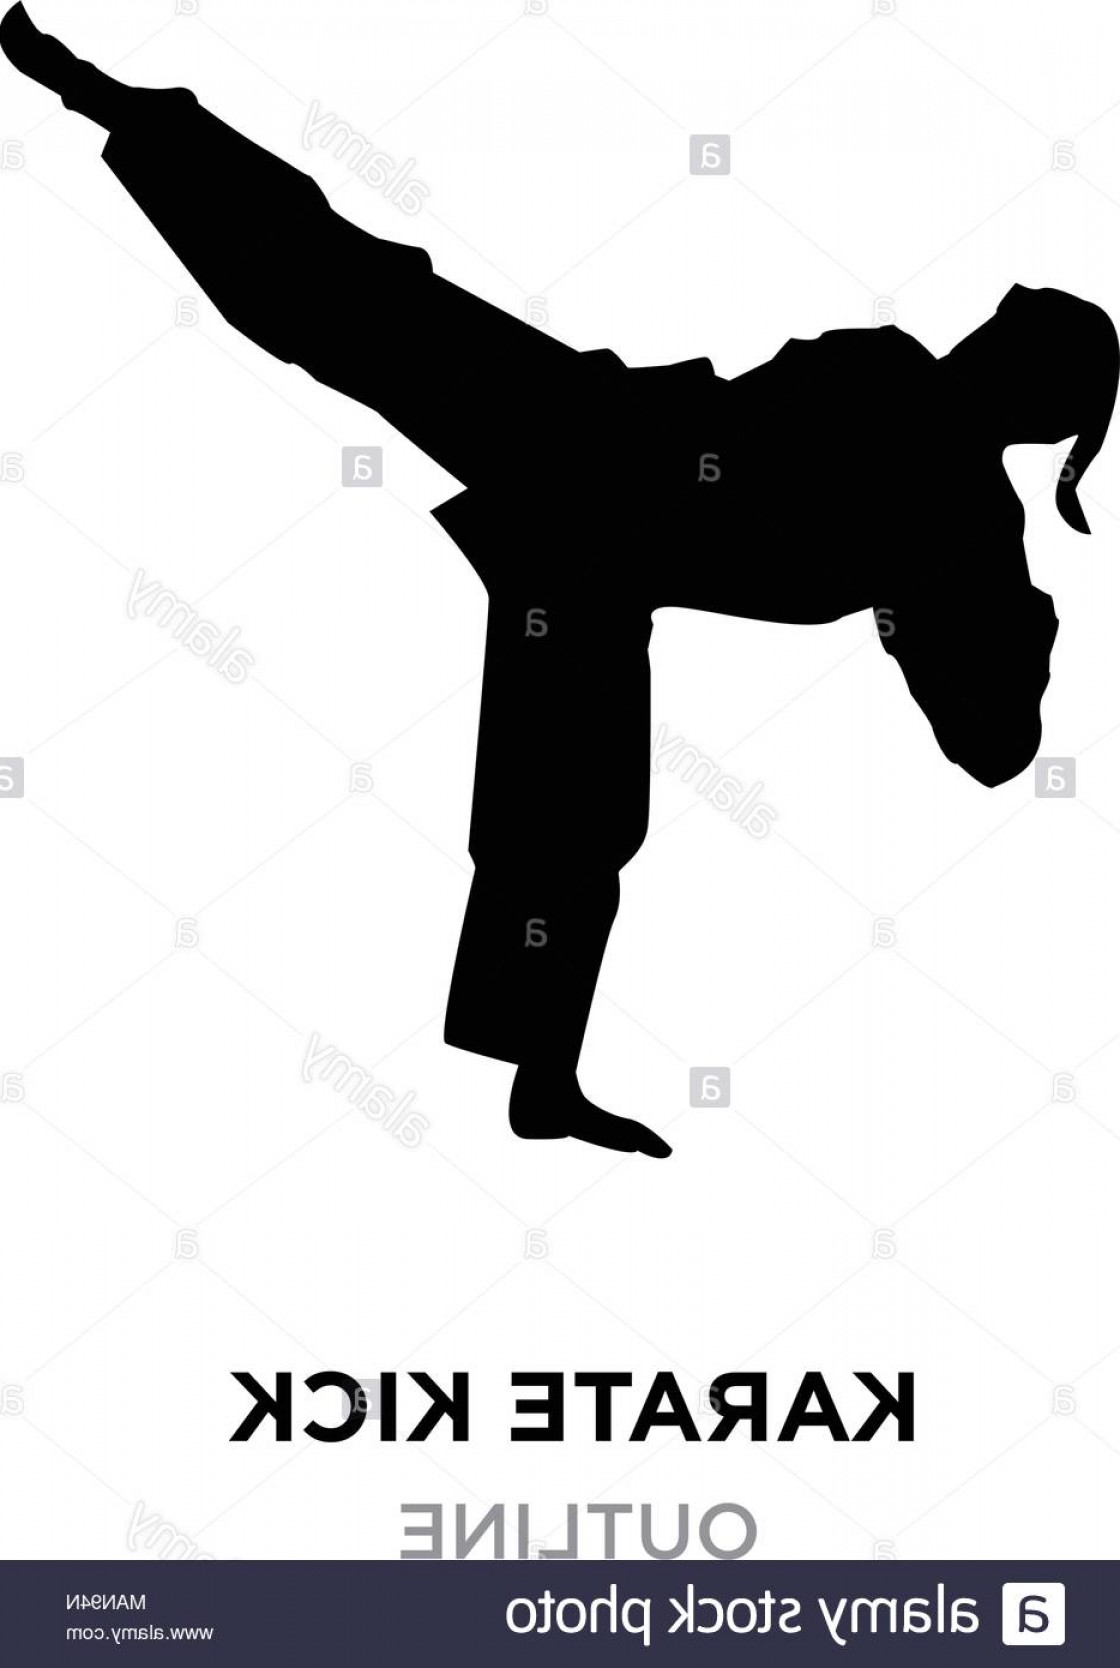 Karate Vector: Karate Kick Silhouette On White Background Vector Illustration Image